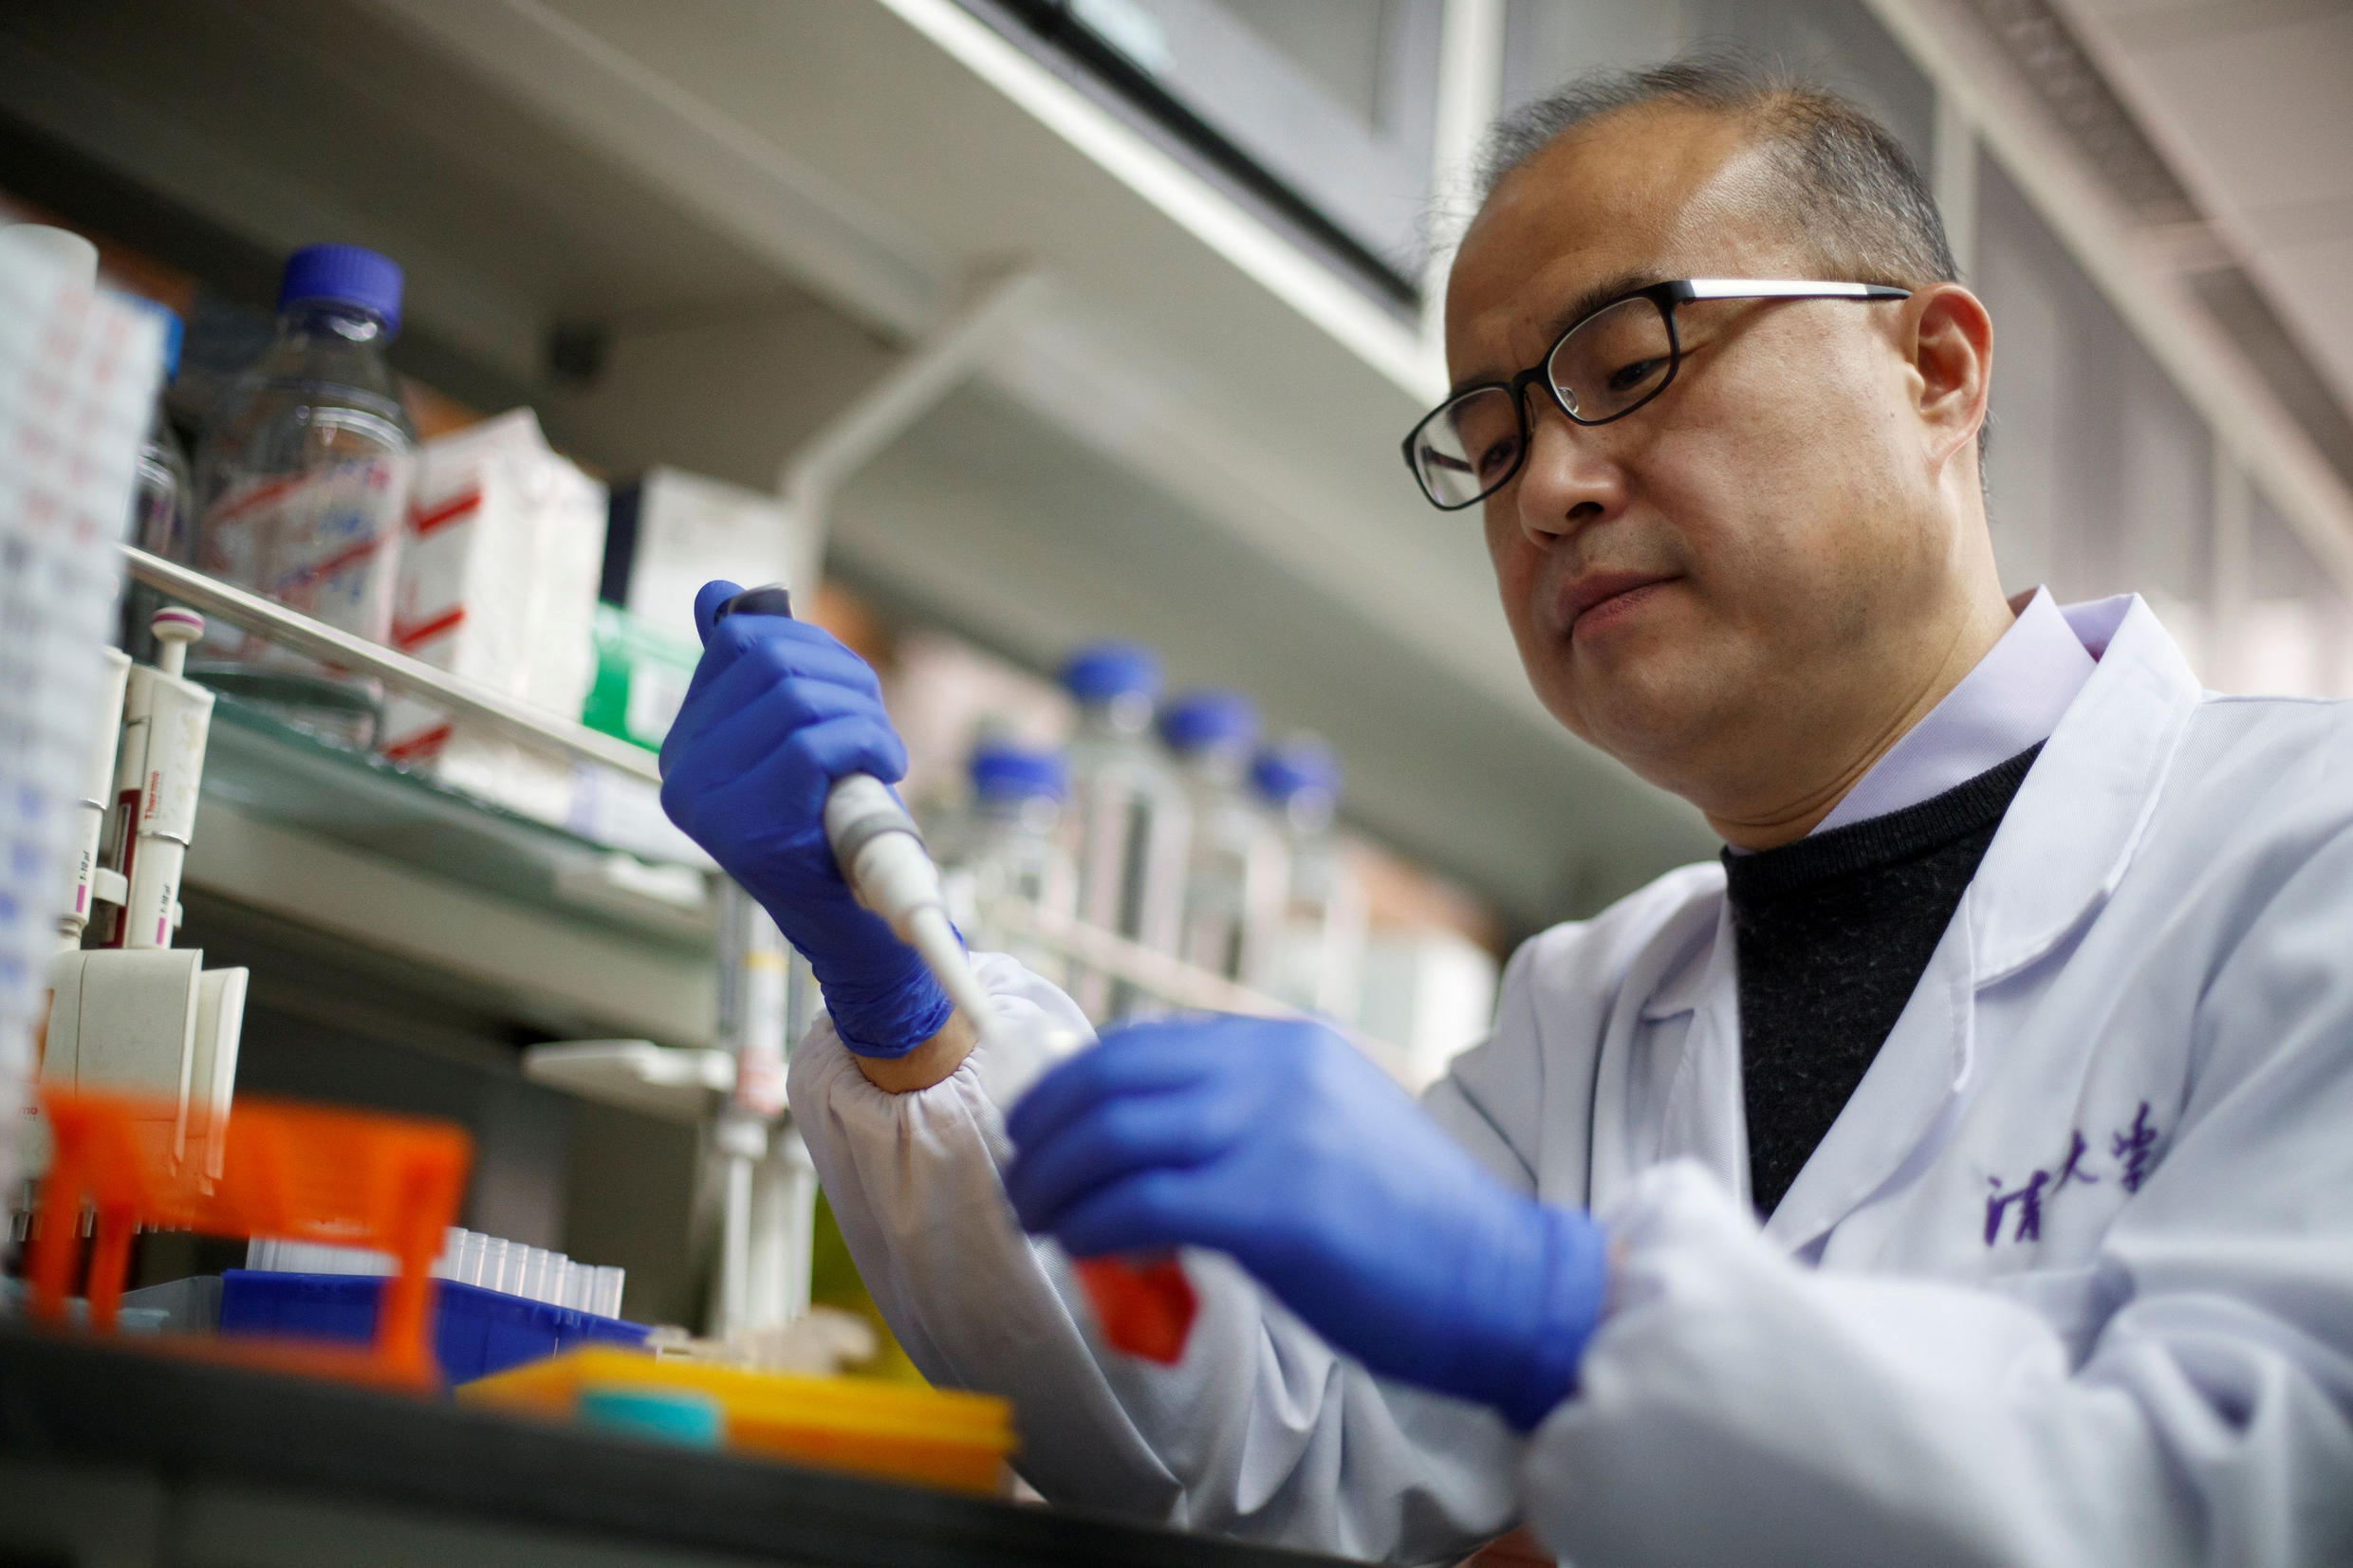 Scientist Linqi Zhang demonstrates work in his laboratory where he researches COVID-19 antibodies for use in a drug at Tsinghua University's Research Center for Public Health in Beijing on March 30, 2020.